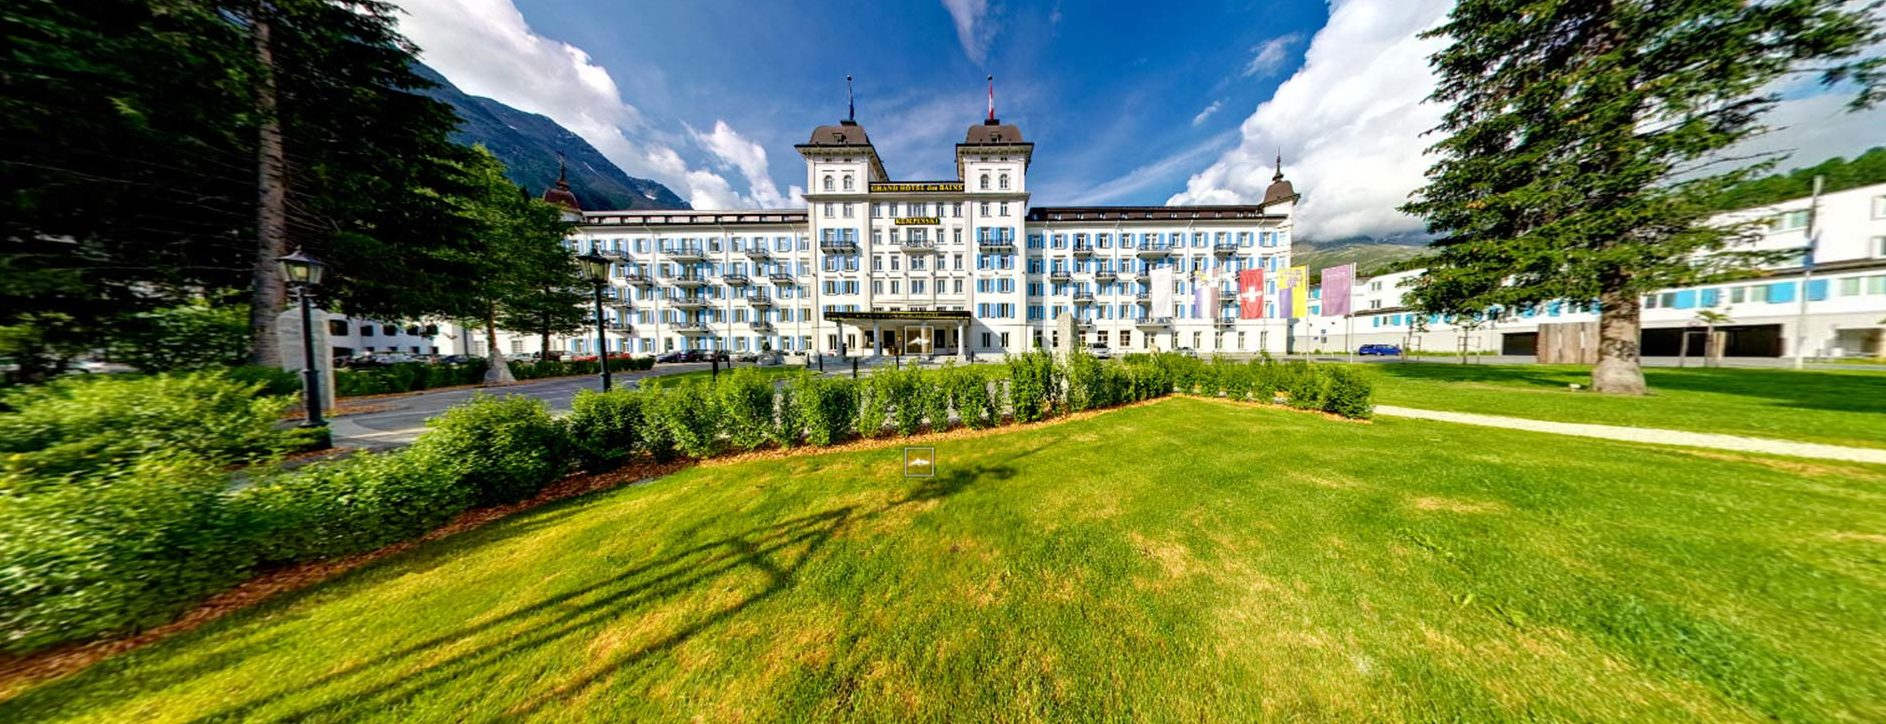 the Kempinski Grand Hotel des Bains, your gateway to the spectacular St Moritz. Situated in the Upper Engadine and easily accessible by road or rail, the hotel offers five-star luxury in a breathtaking mountain setting.